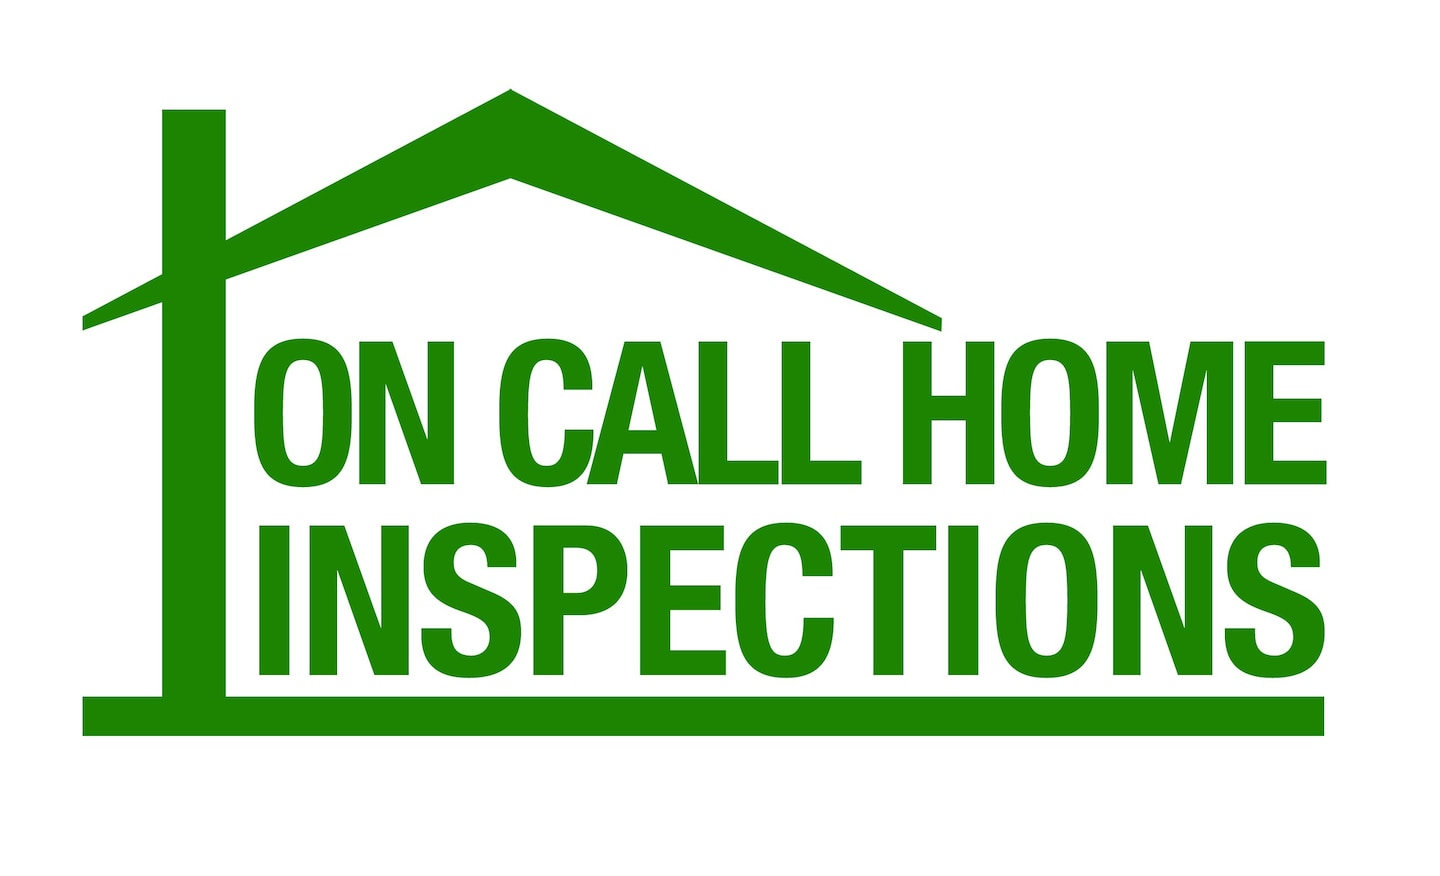 On Call Home Inspections logo